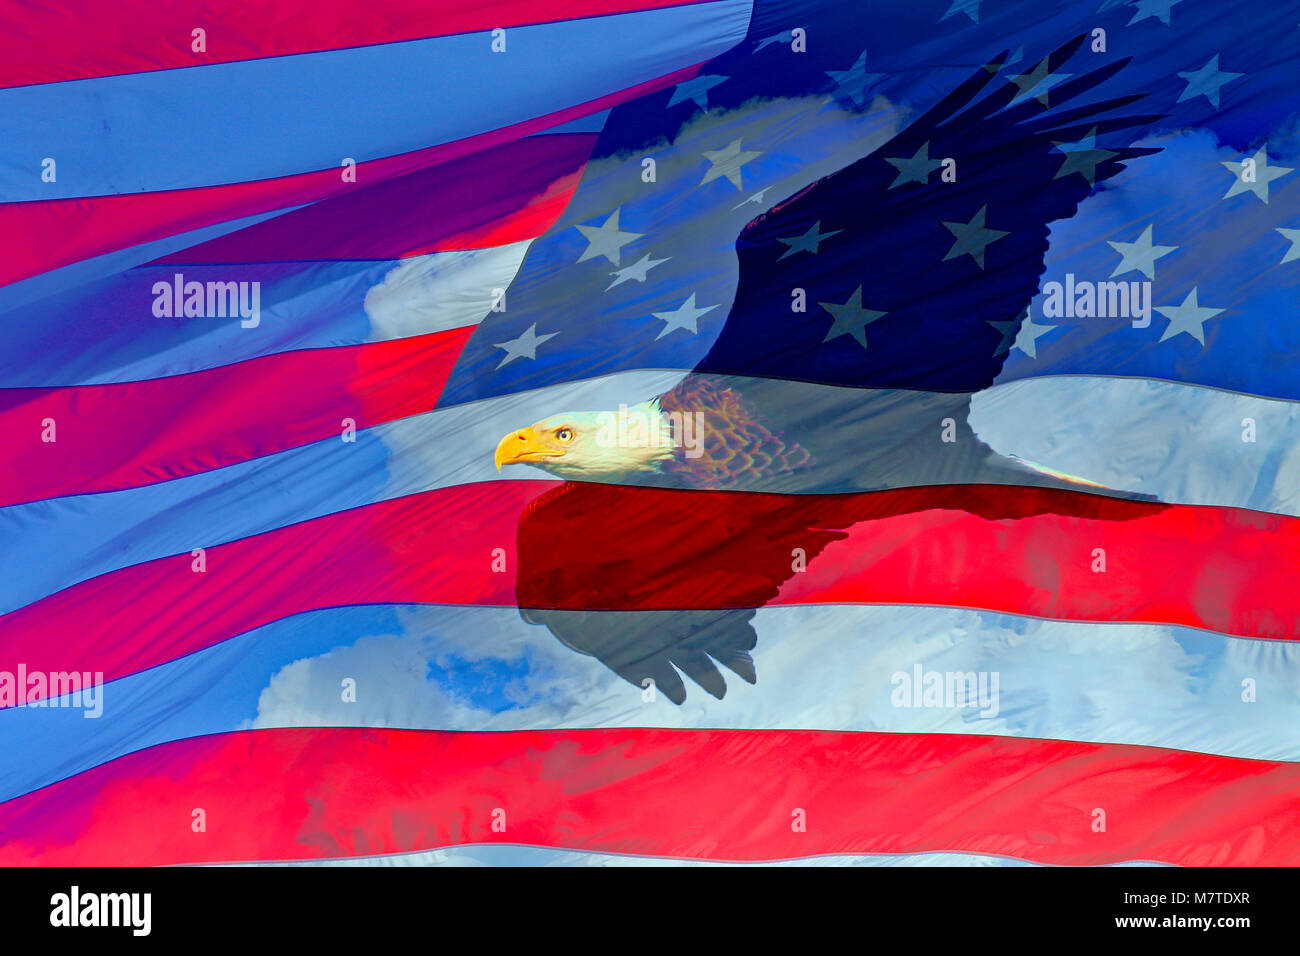 Bald eagle in flight and US Flag composite - Stock Image